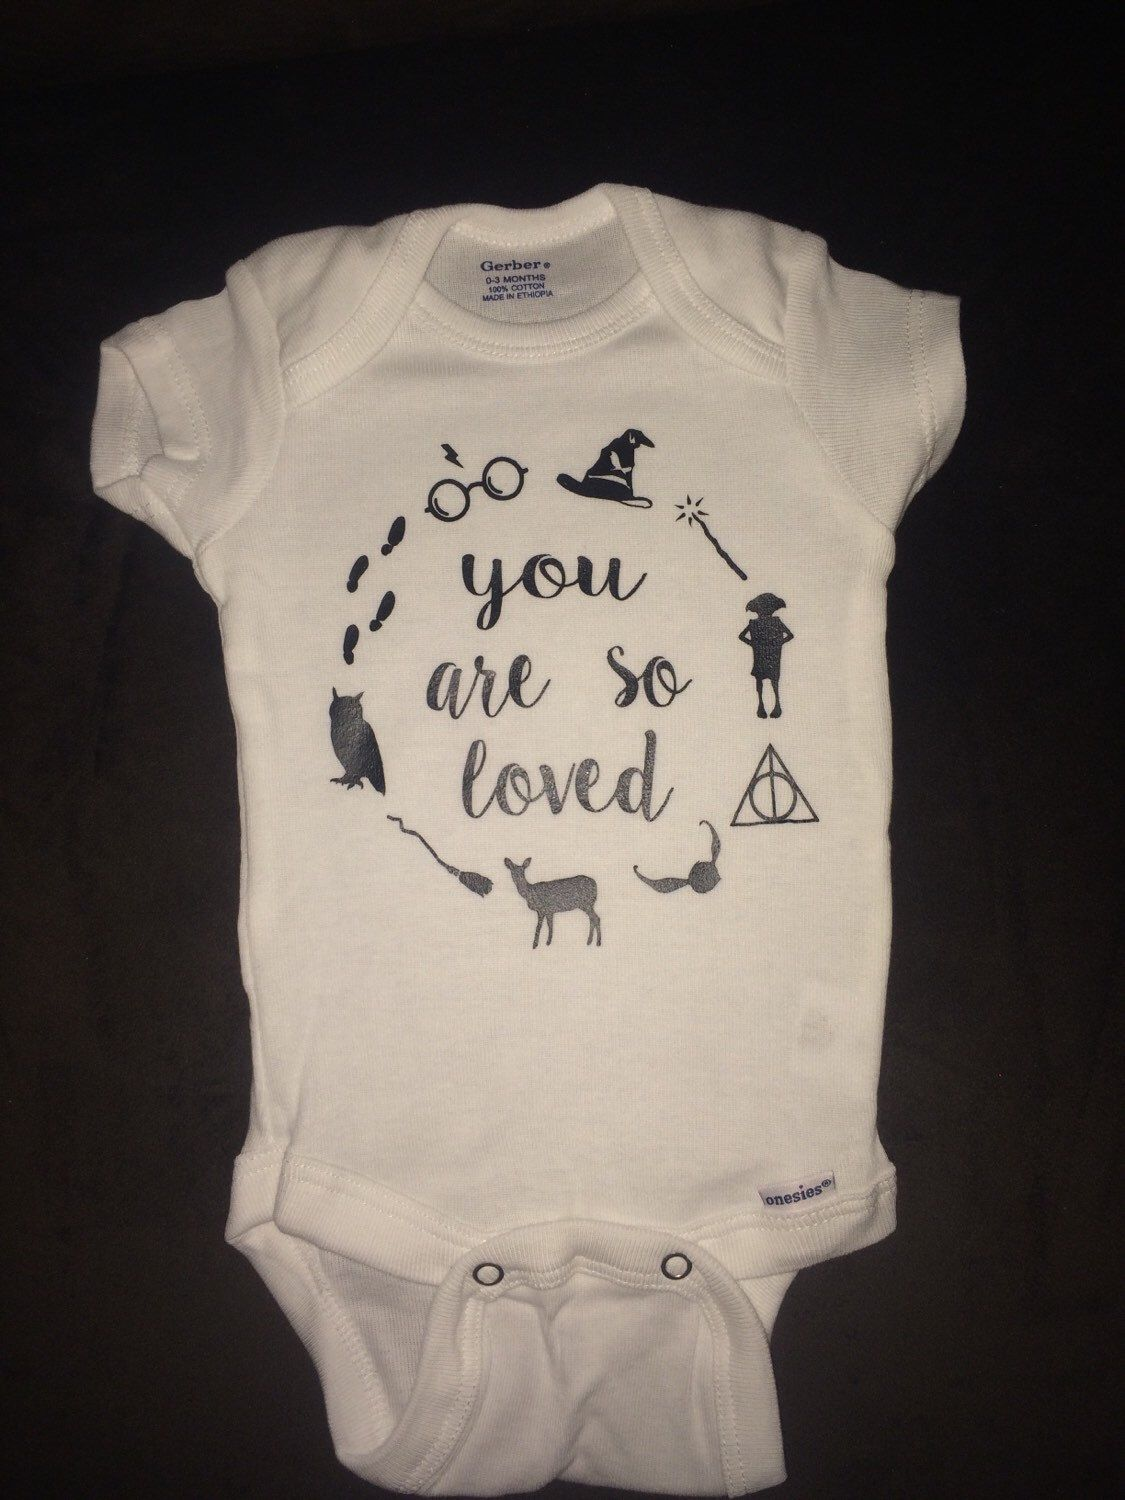 a67170c6cd4a94 Harry Potter inspired baby onesie! Great for your soon to be potterhead